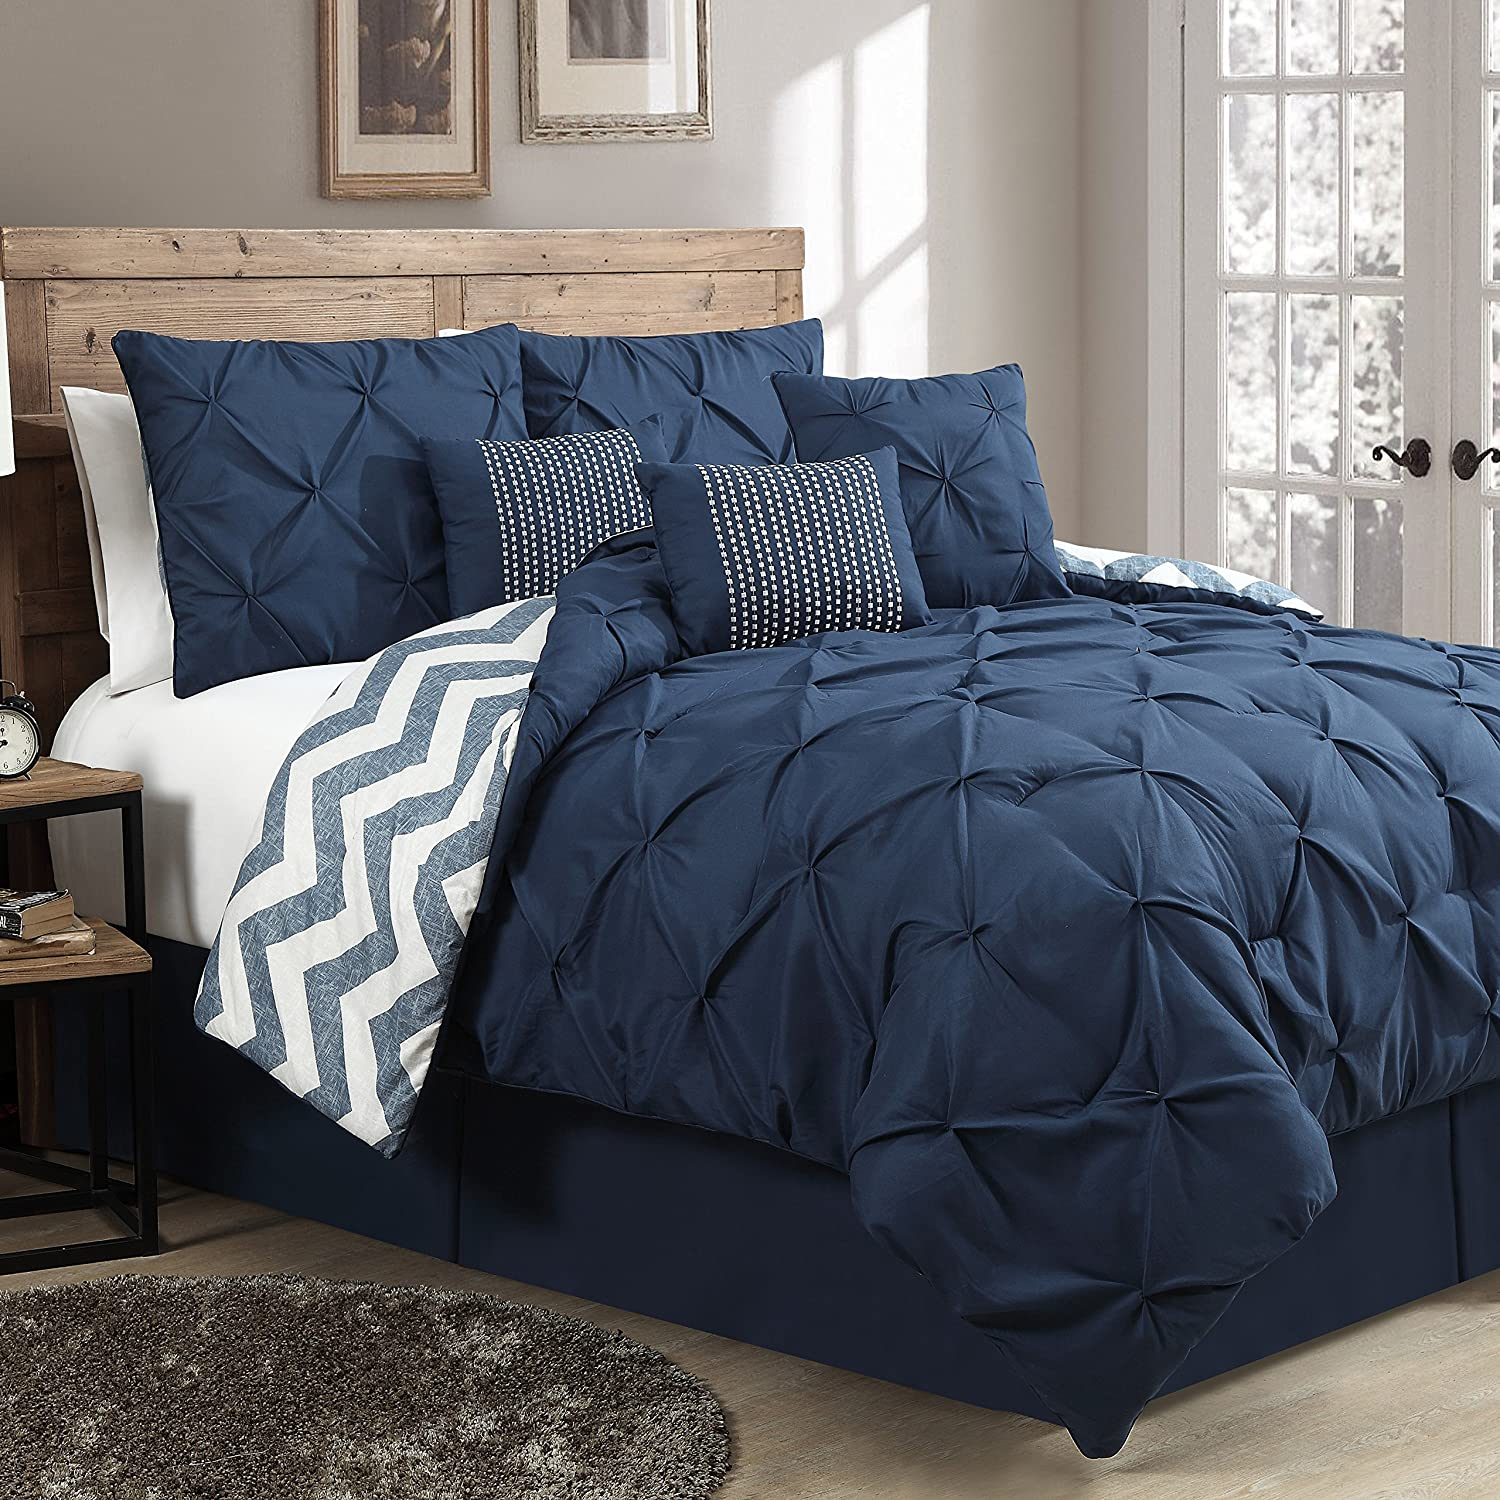 Navy Bedding And Comforter Sets